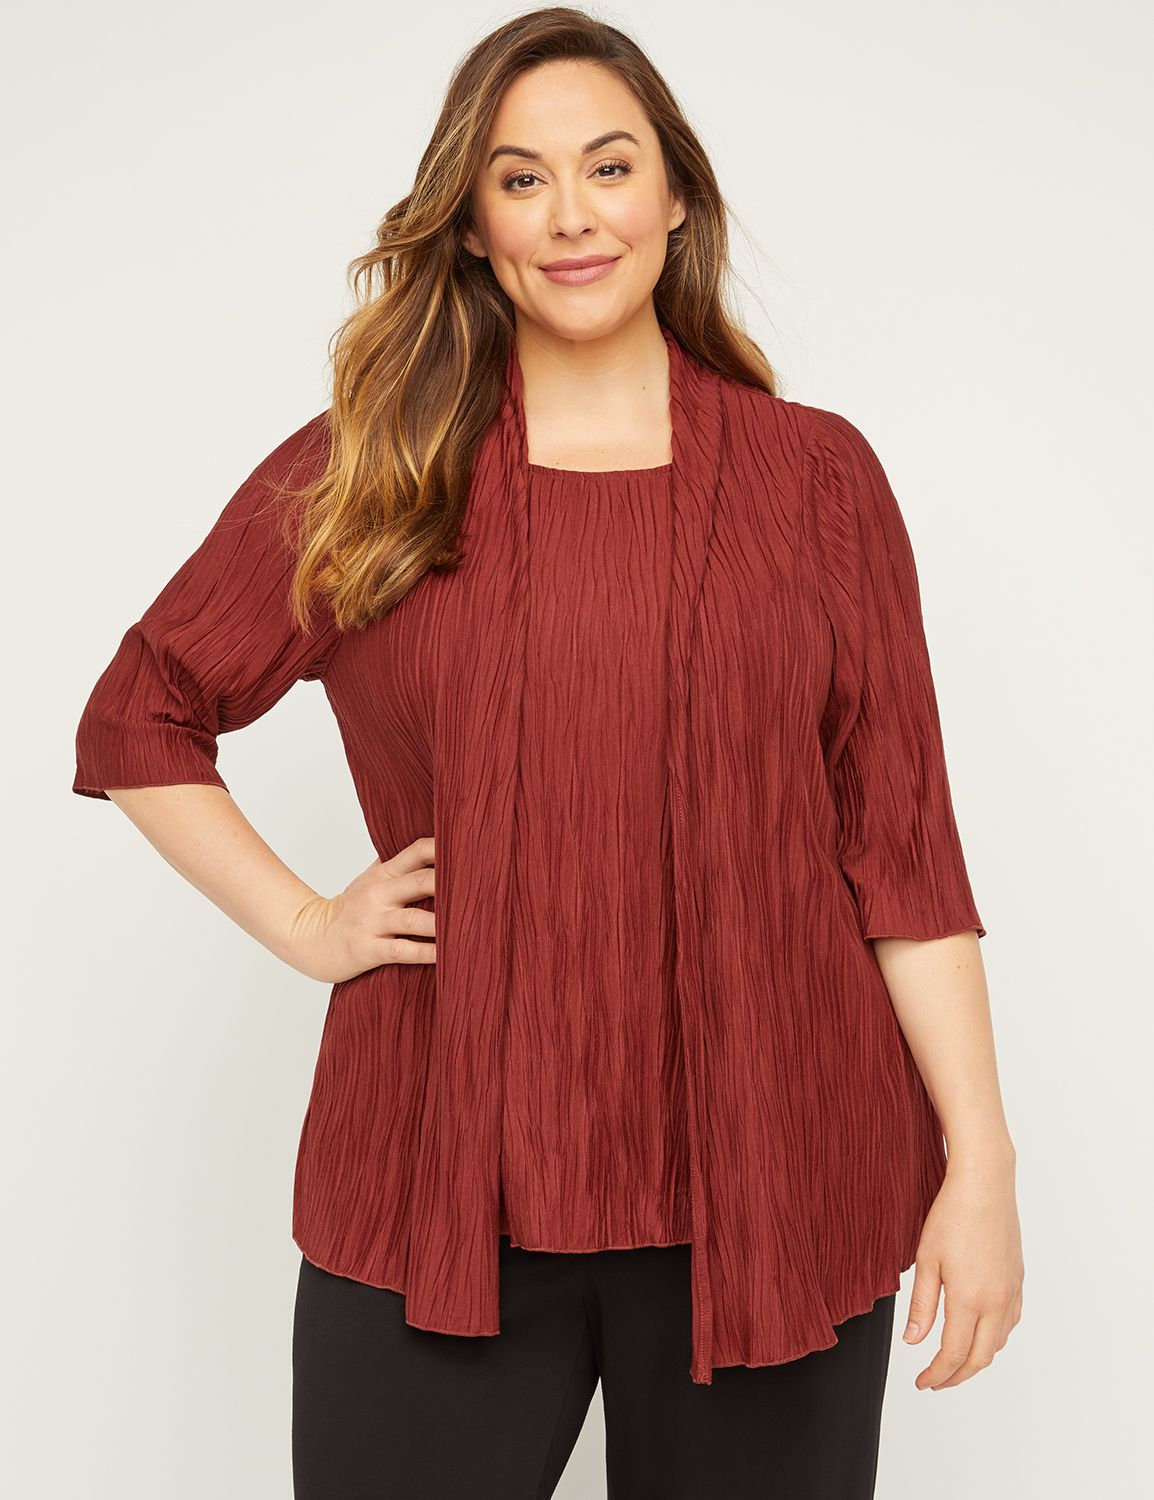 AnyWear Crinkle Duet Top